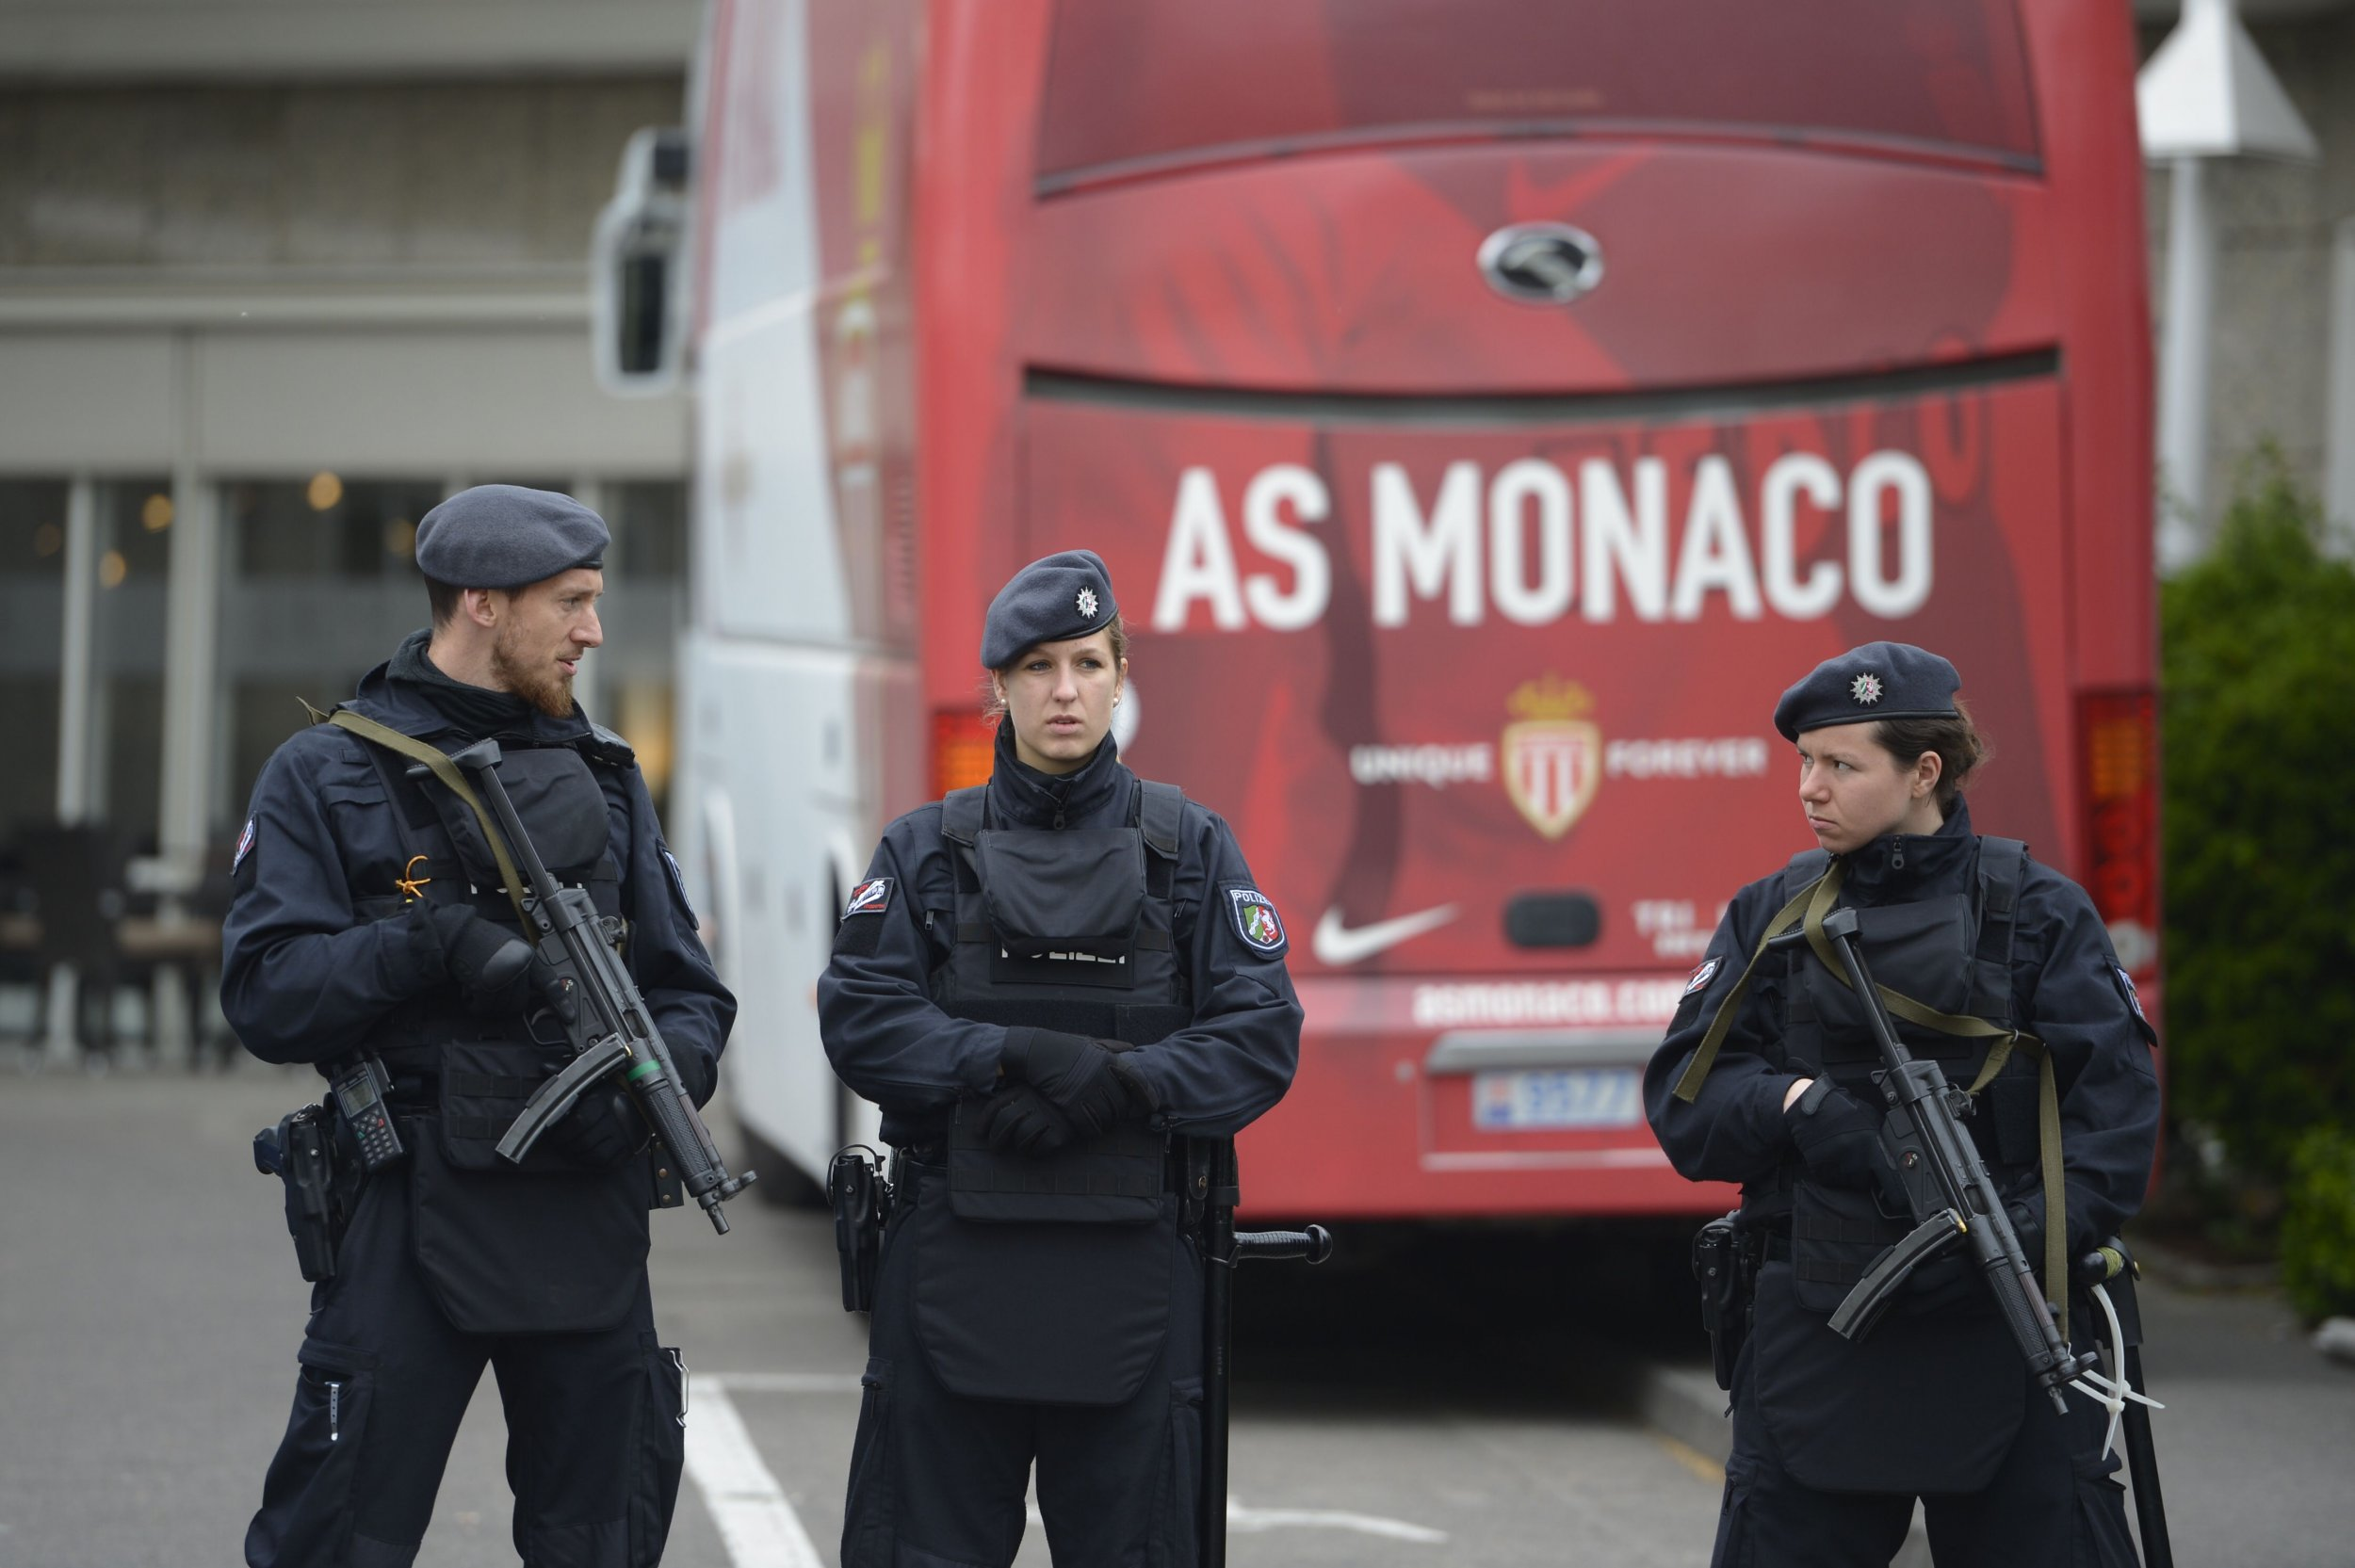 Policemen stand guard in front of the AS Monaco team bus in Dortmund, western Germany, April 12.